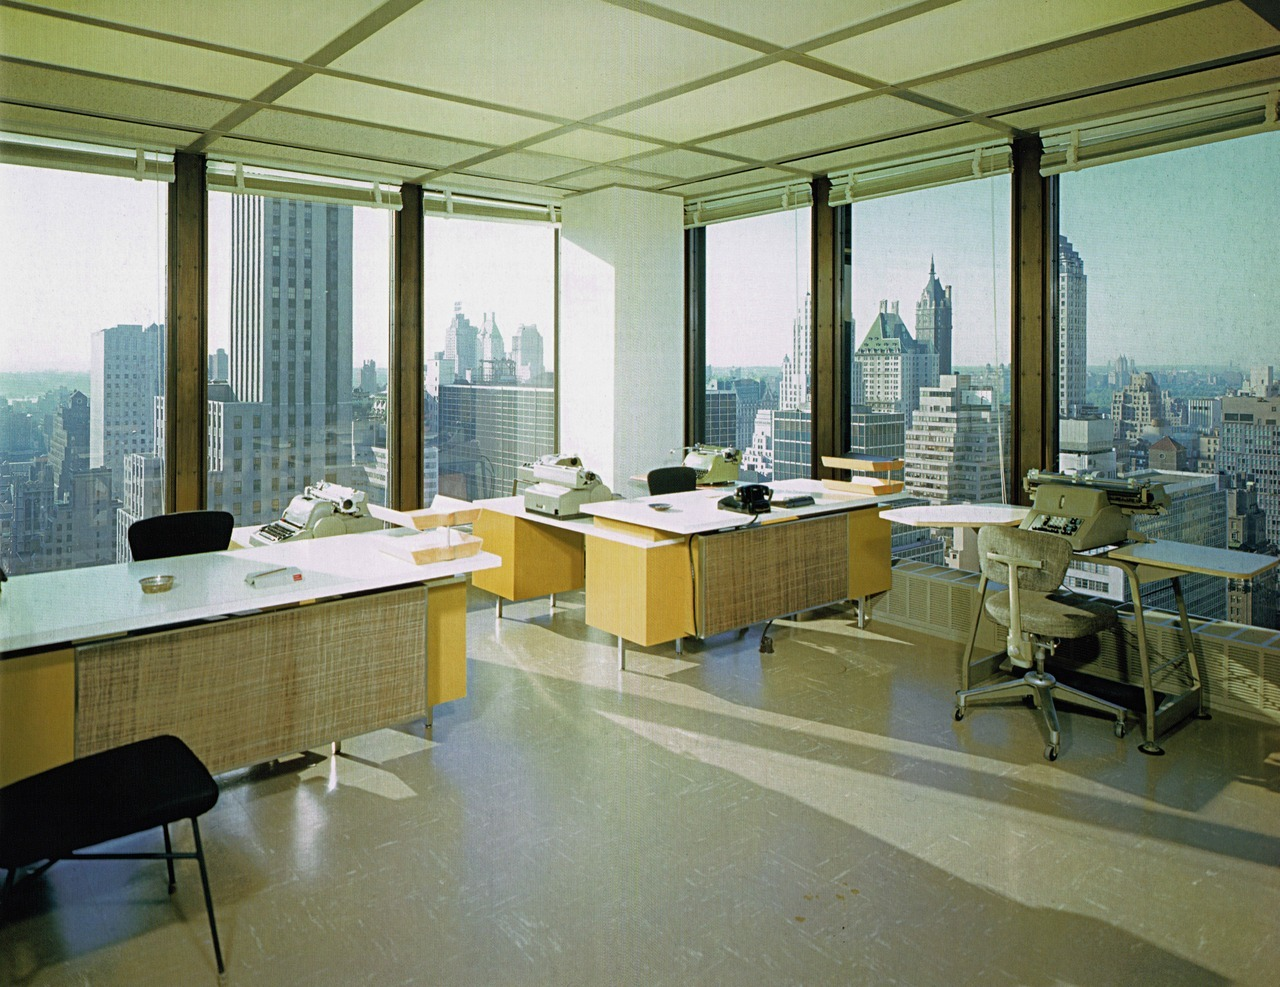 An office inside the Seagram Building, New York, 1958